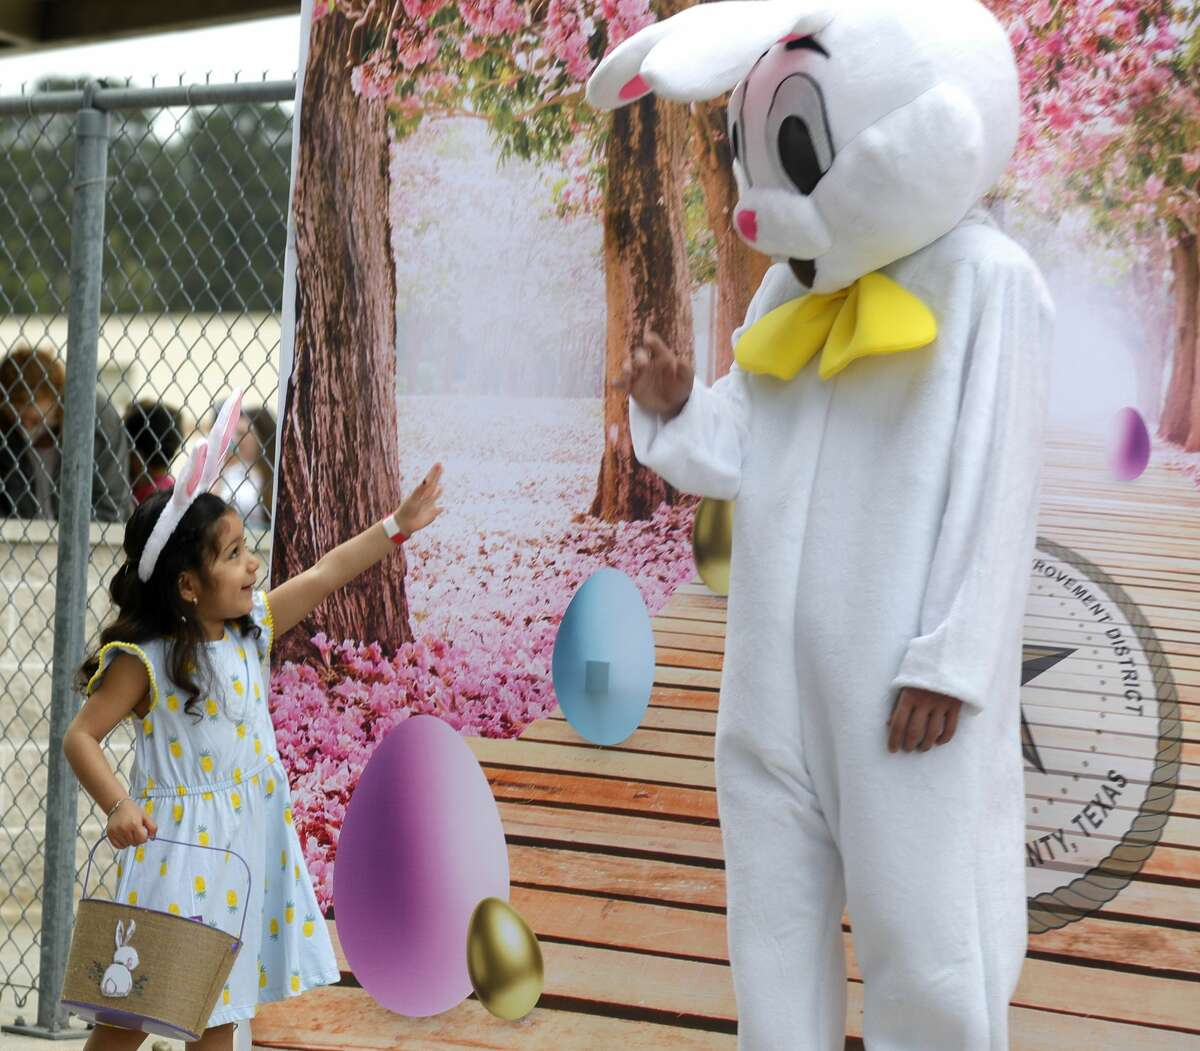 Wendy Carrillo waves to the Easter Bunny at East Montgomery County Improvement District's Eggcellent Event and Spring Mini-Market at New Caney Middle School, Saturday, March 27, 2021, in New Caney. Children were also able to take part in an Easter egg hunt with 80,000 brightly colored eggs scattered across Don Ford Stadium.